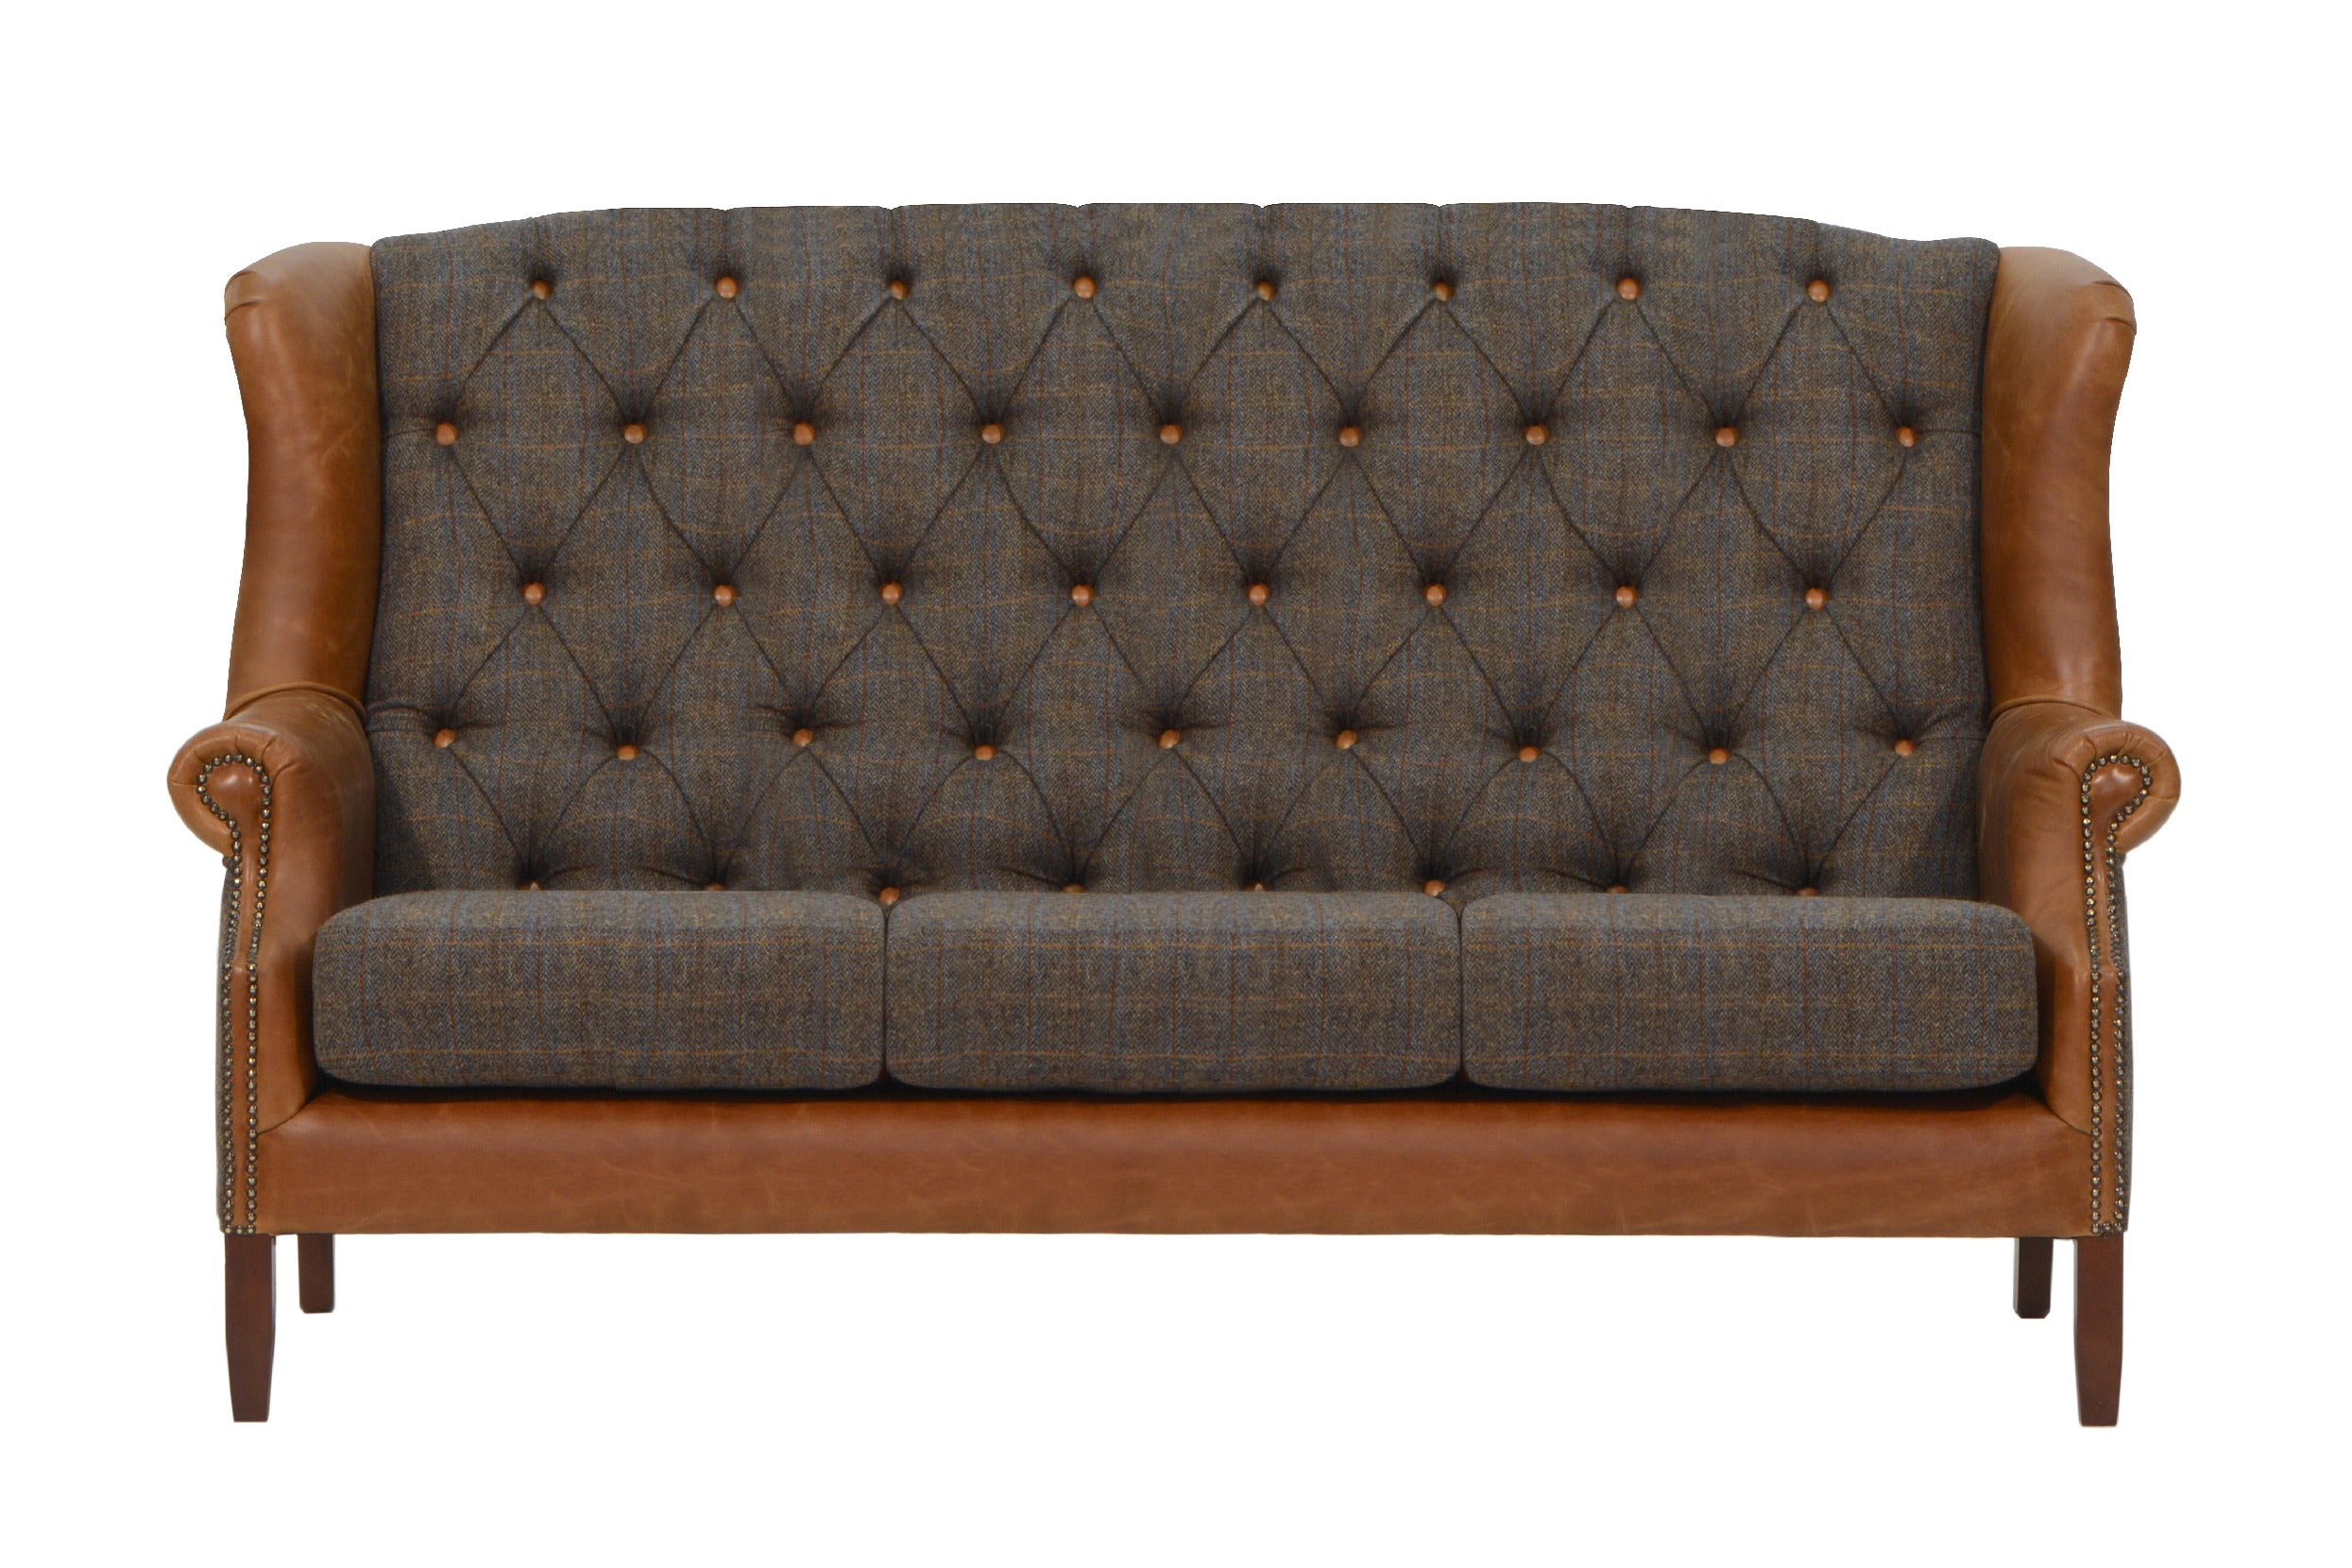 Wing 3 Seater Sofa Harris Tweed and Leather REDUCED TO CLEAR STOCK-harris tweed accent chairs-Against The Grain Furniture-Against The Grain Furniture